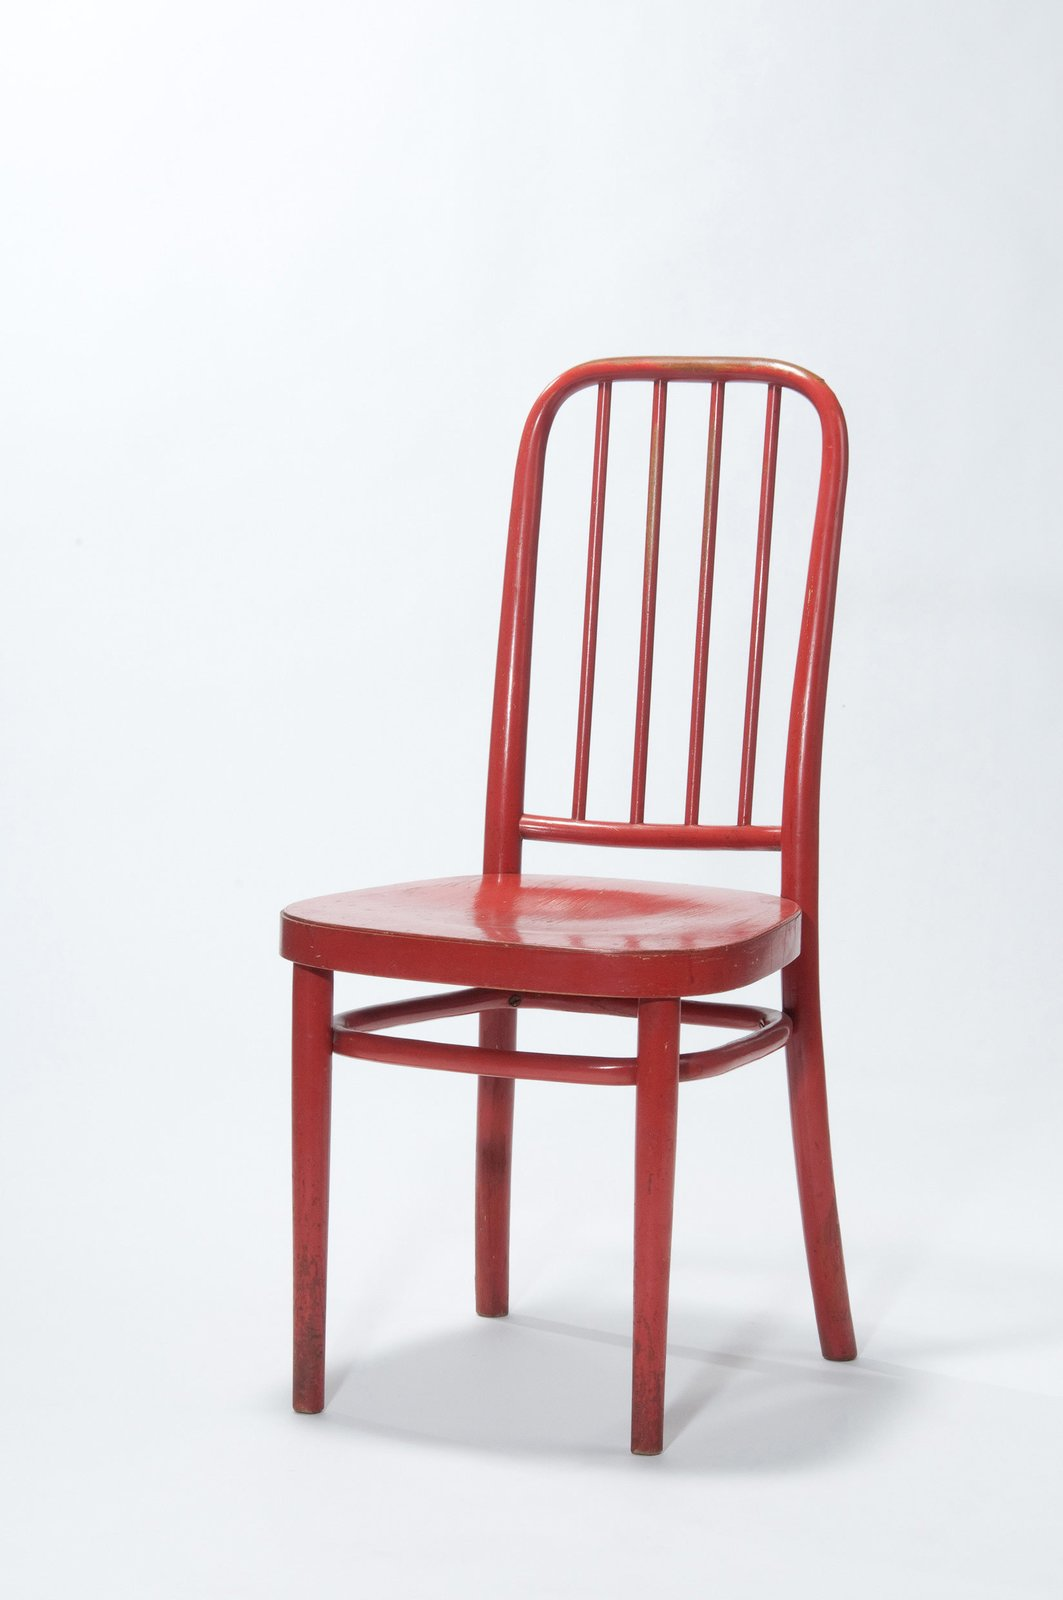 Modell A 63, a lacquered bentwood chair designed in 1929 for Thonet-Mundus.  Photo 5 of 6 in The Modernist Icon with Over 1,000 Pieces of Furniture to His Name